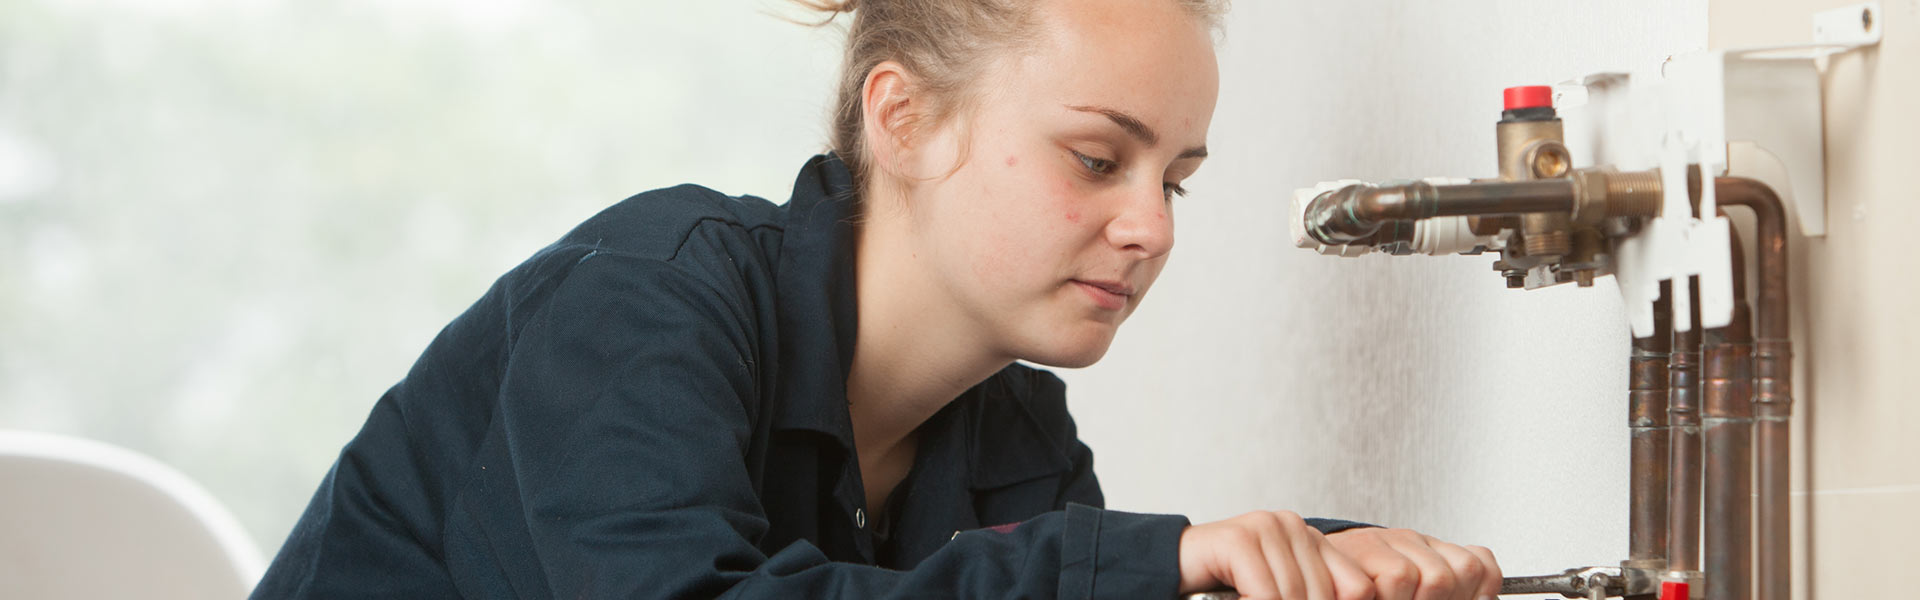 Construction Courses And Apprenticeships In London